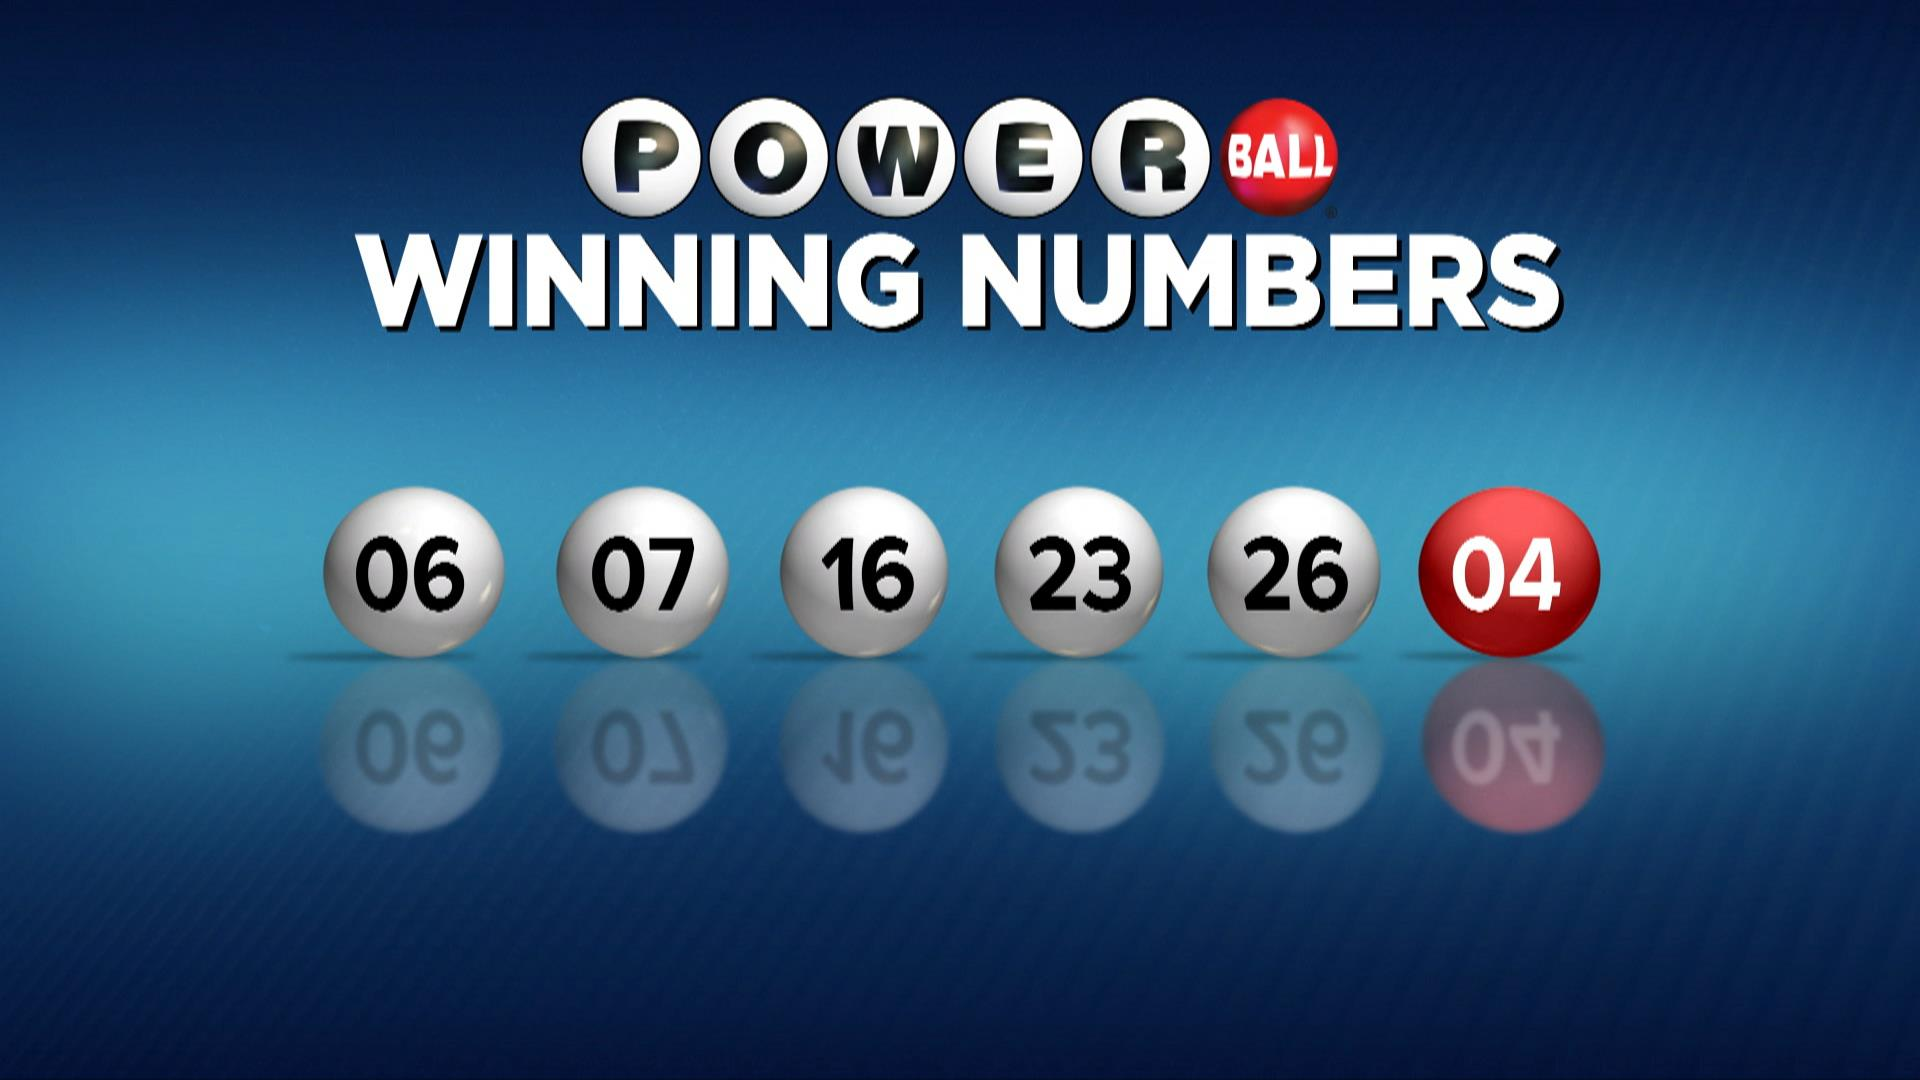 washington powerball winner photo - 1